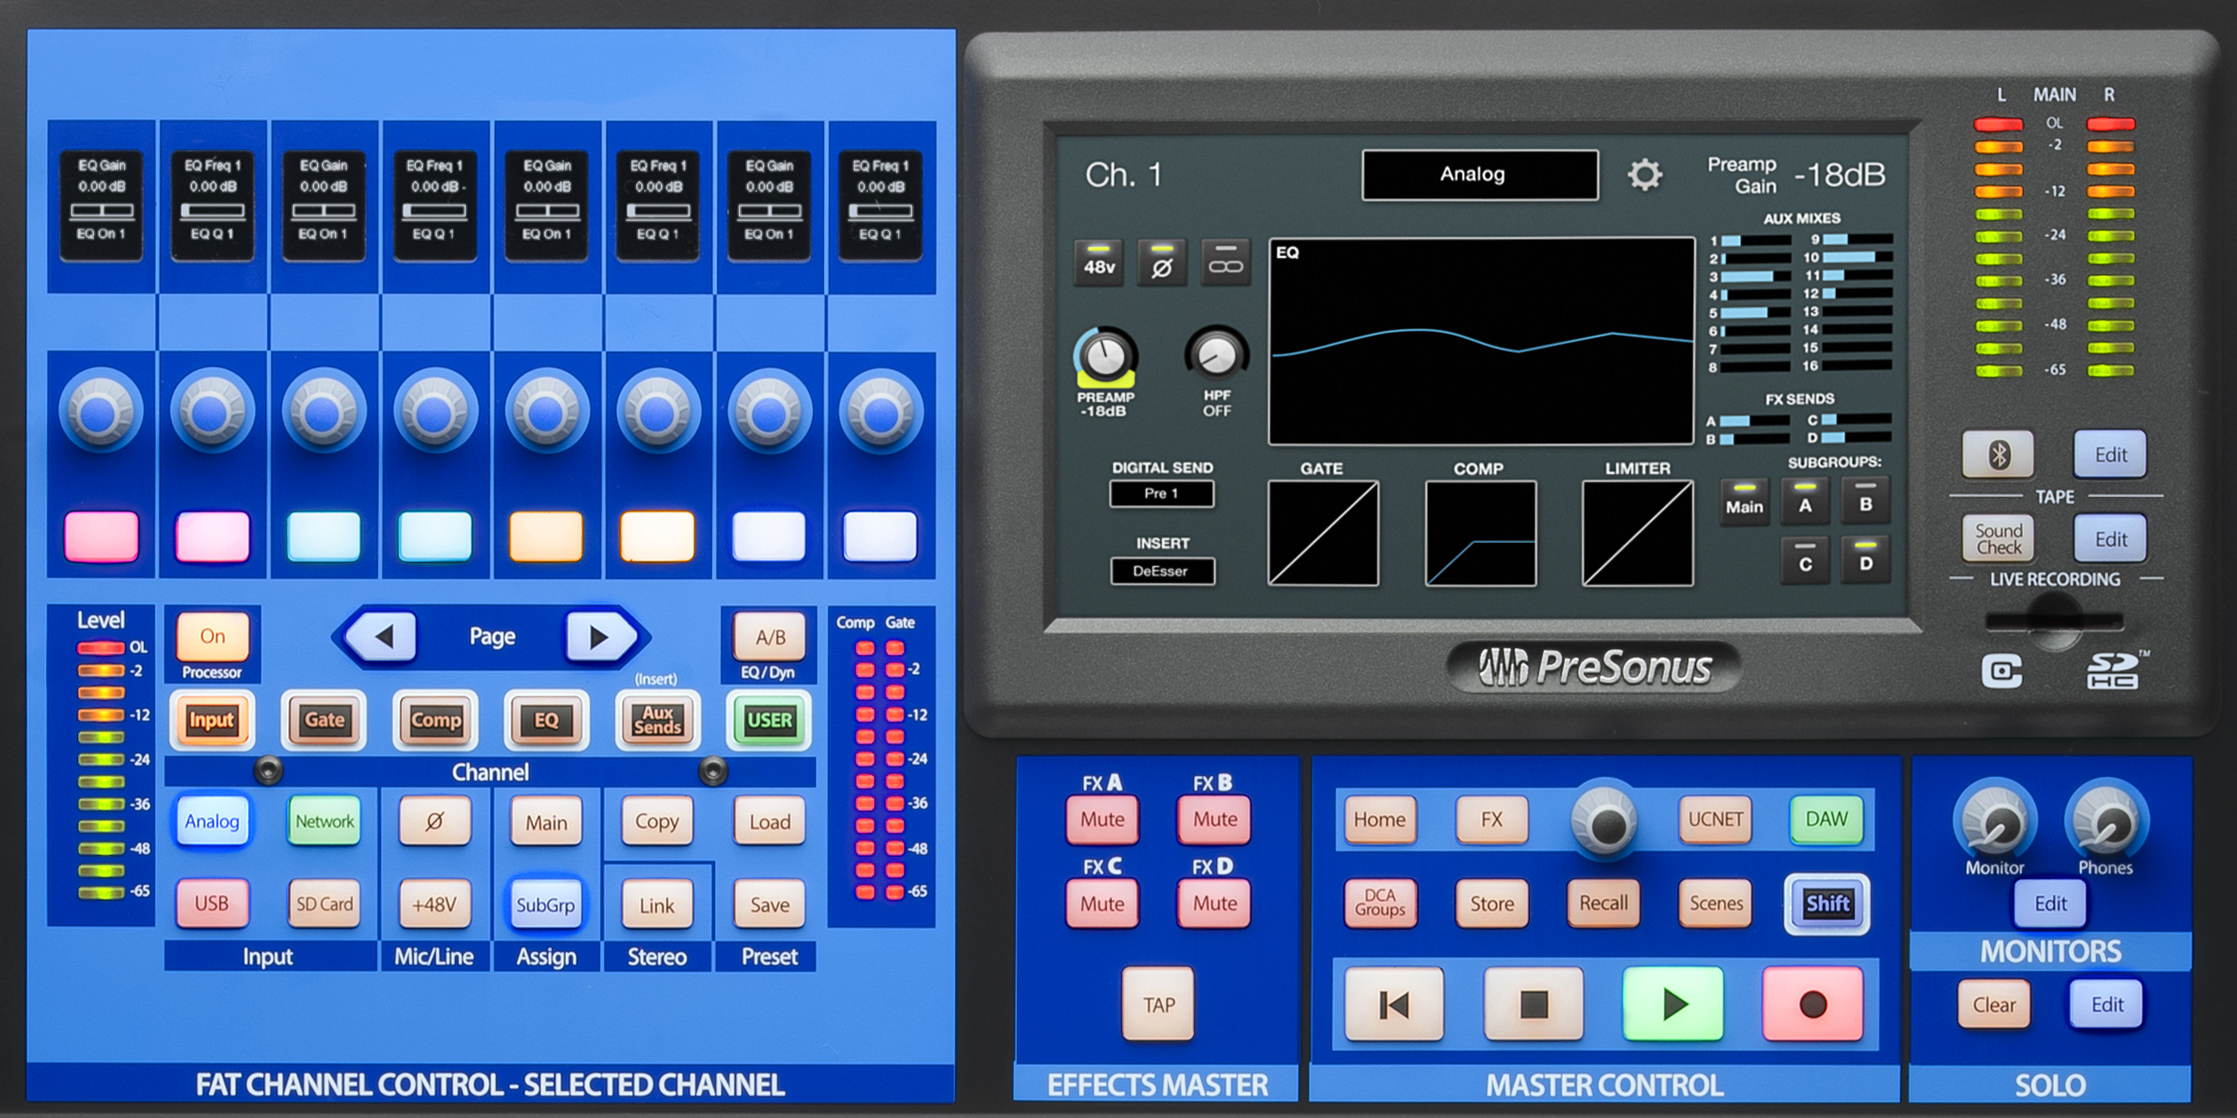 How To Mix And Record Church Servicesand More Presonus Diagram Furthermore Live Sound Pa System Setup On Studiolive Digital Mixers Changed All That Providing A Wealth Of Onboard Processing Without Forcing You Dive Into Multiple Layers Menus